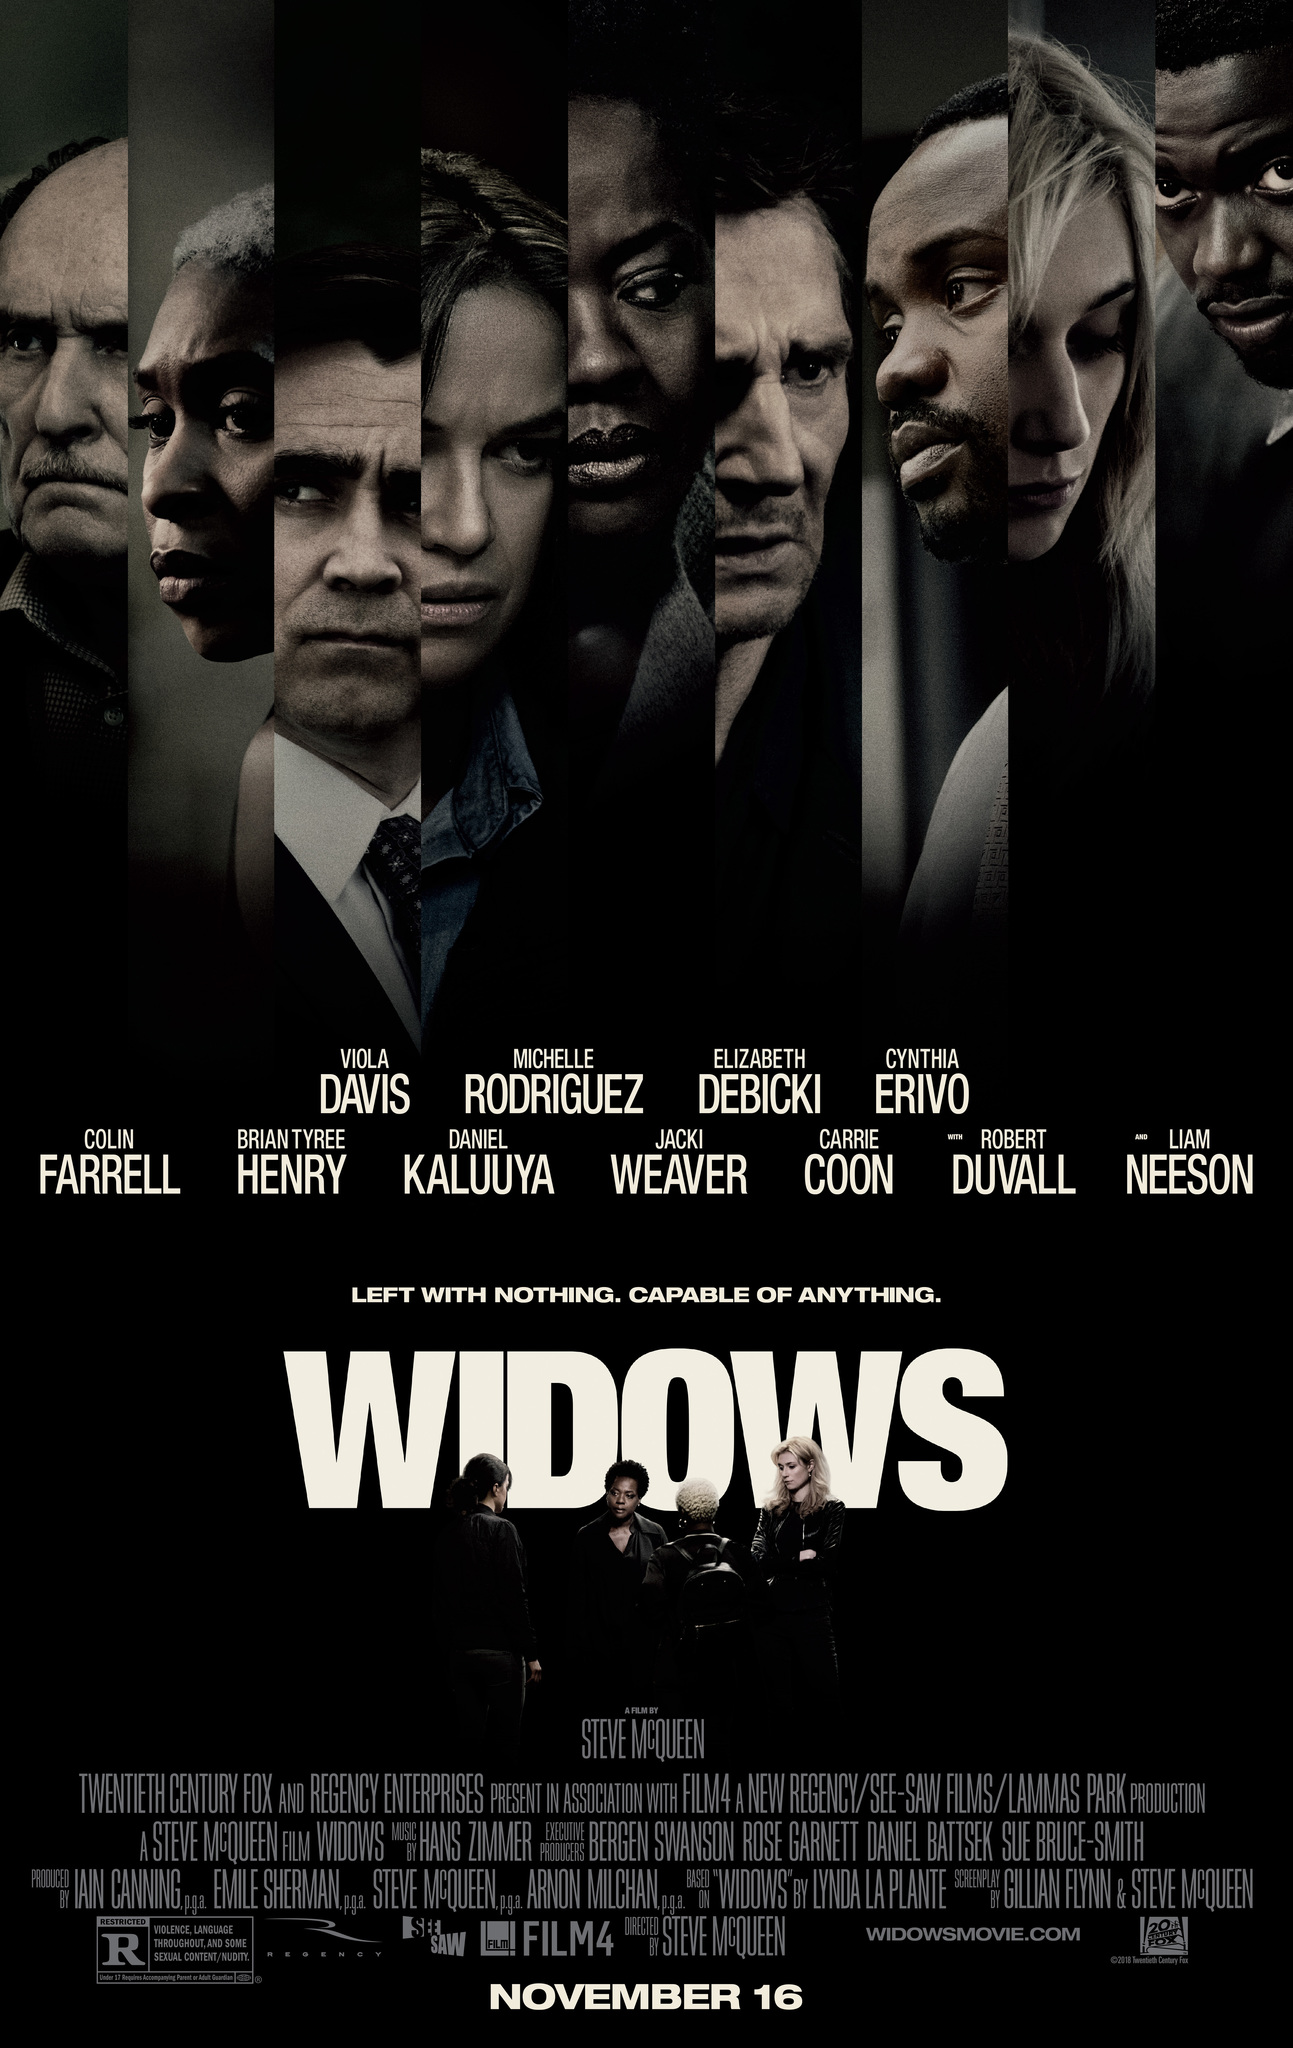 Widows   (2018) dir. Steve McQueen Rated: R image: ©2018  20th Century Fox